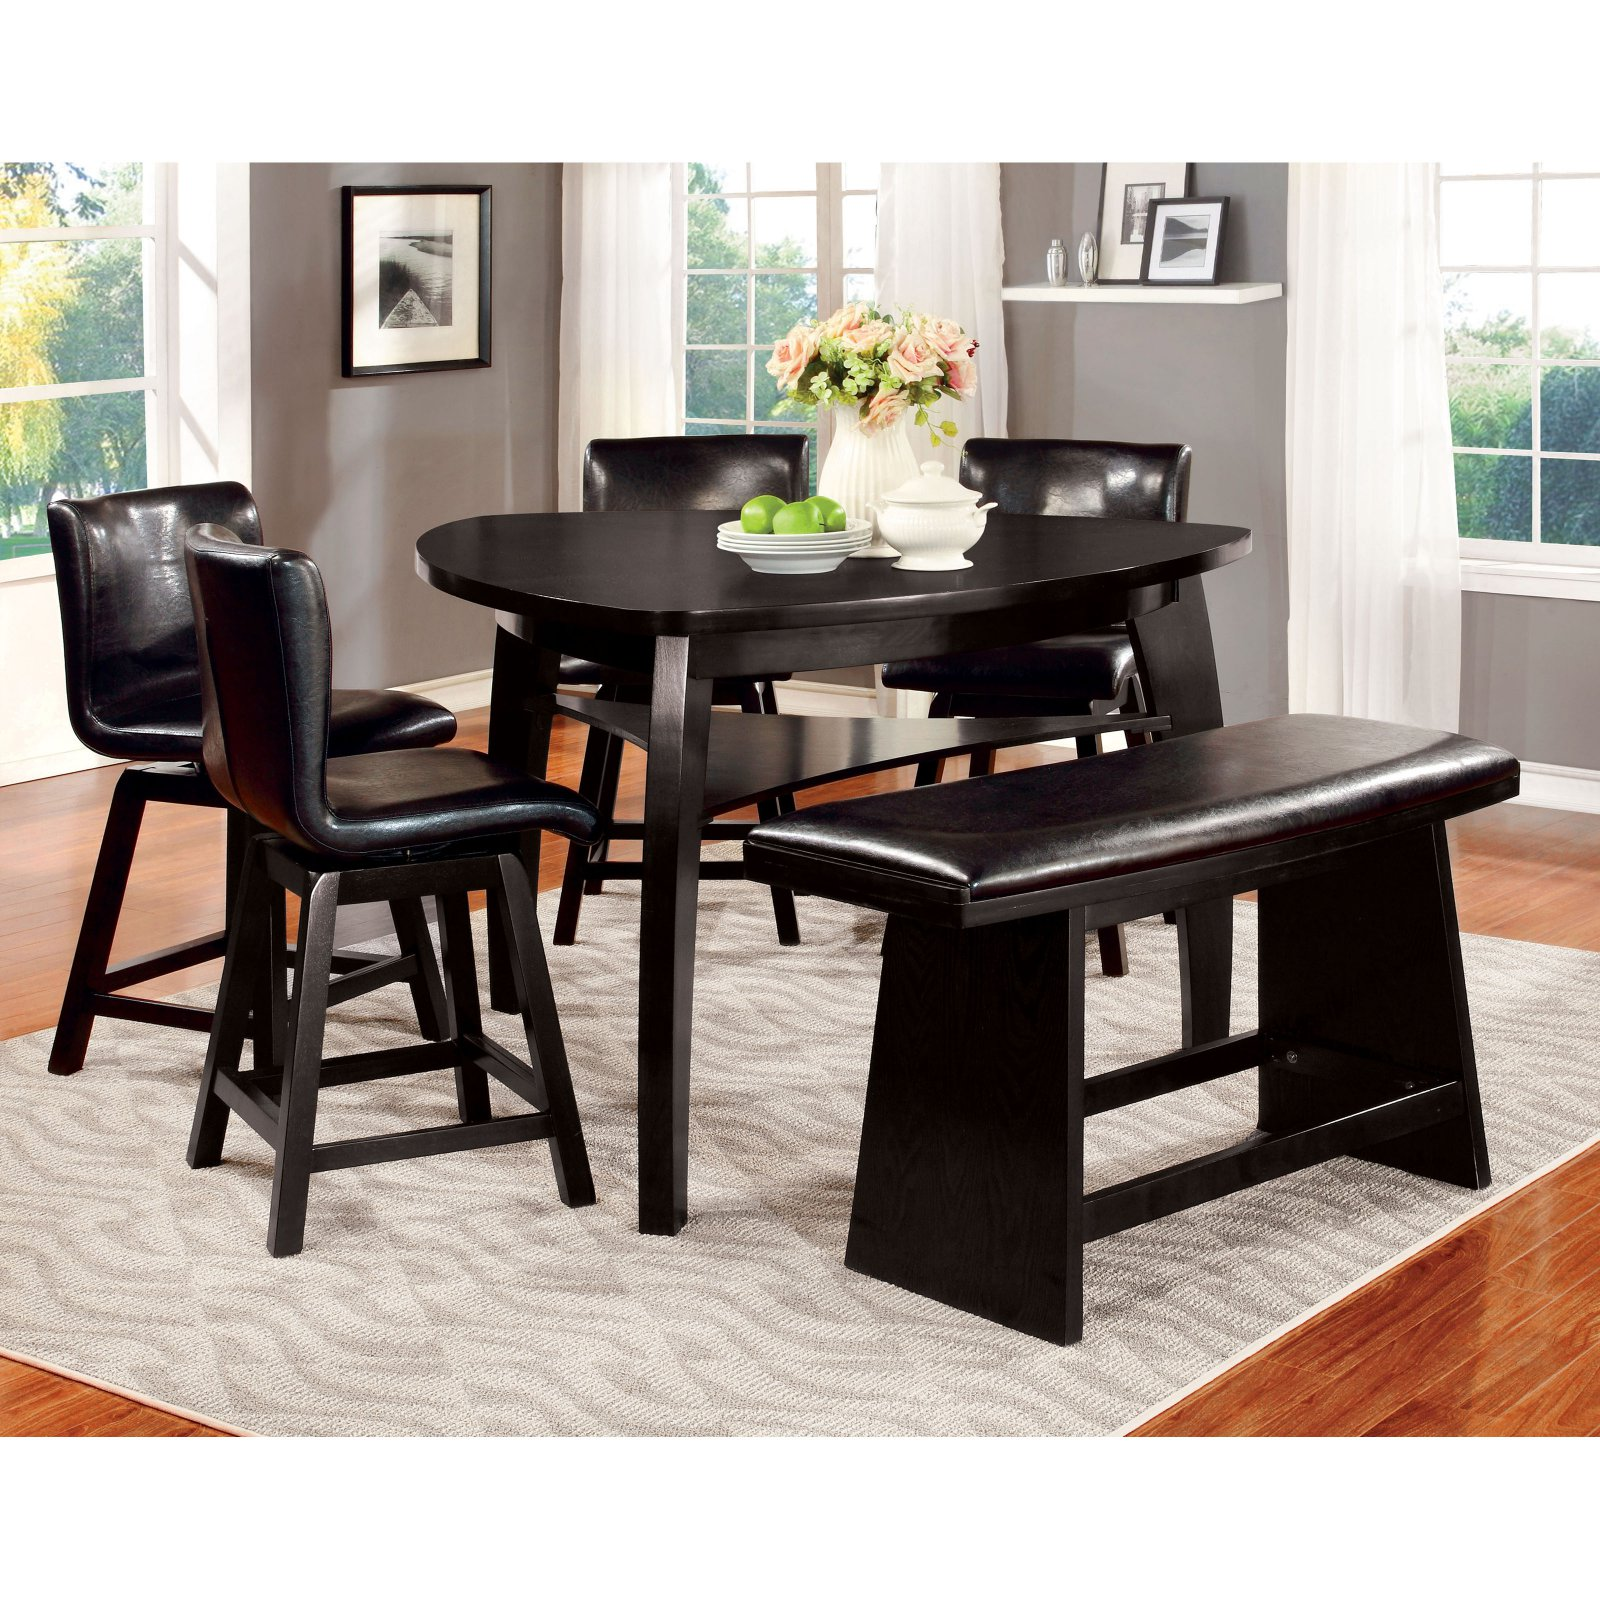 Furniture Of America Rathbun Modern Counter Height Dining Table